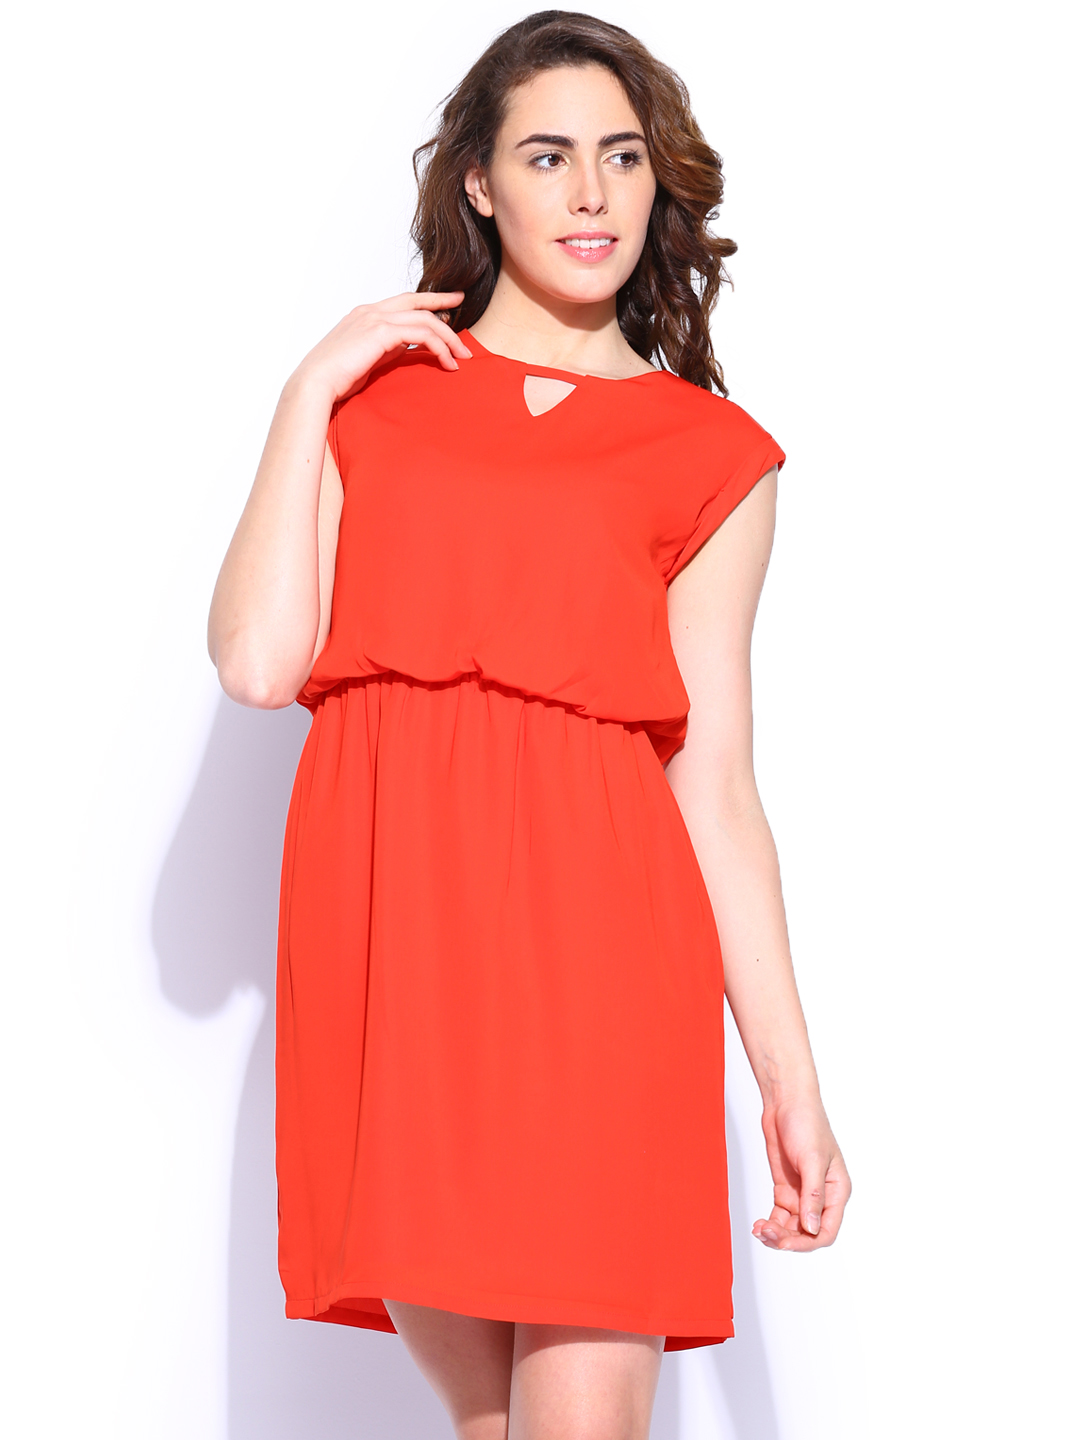 Excellent Womens And Kids Clothing, Footwear, Accessories, Handbags And More From Top Brands Like Tommy Hilfiger, FOREVER 21, Allen Solly, Van Heusen, Steve Madden, American Tourister And More